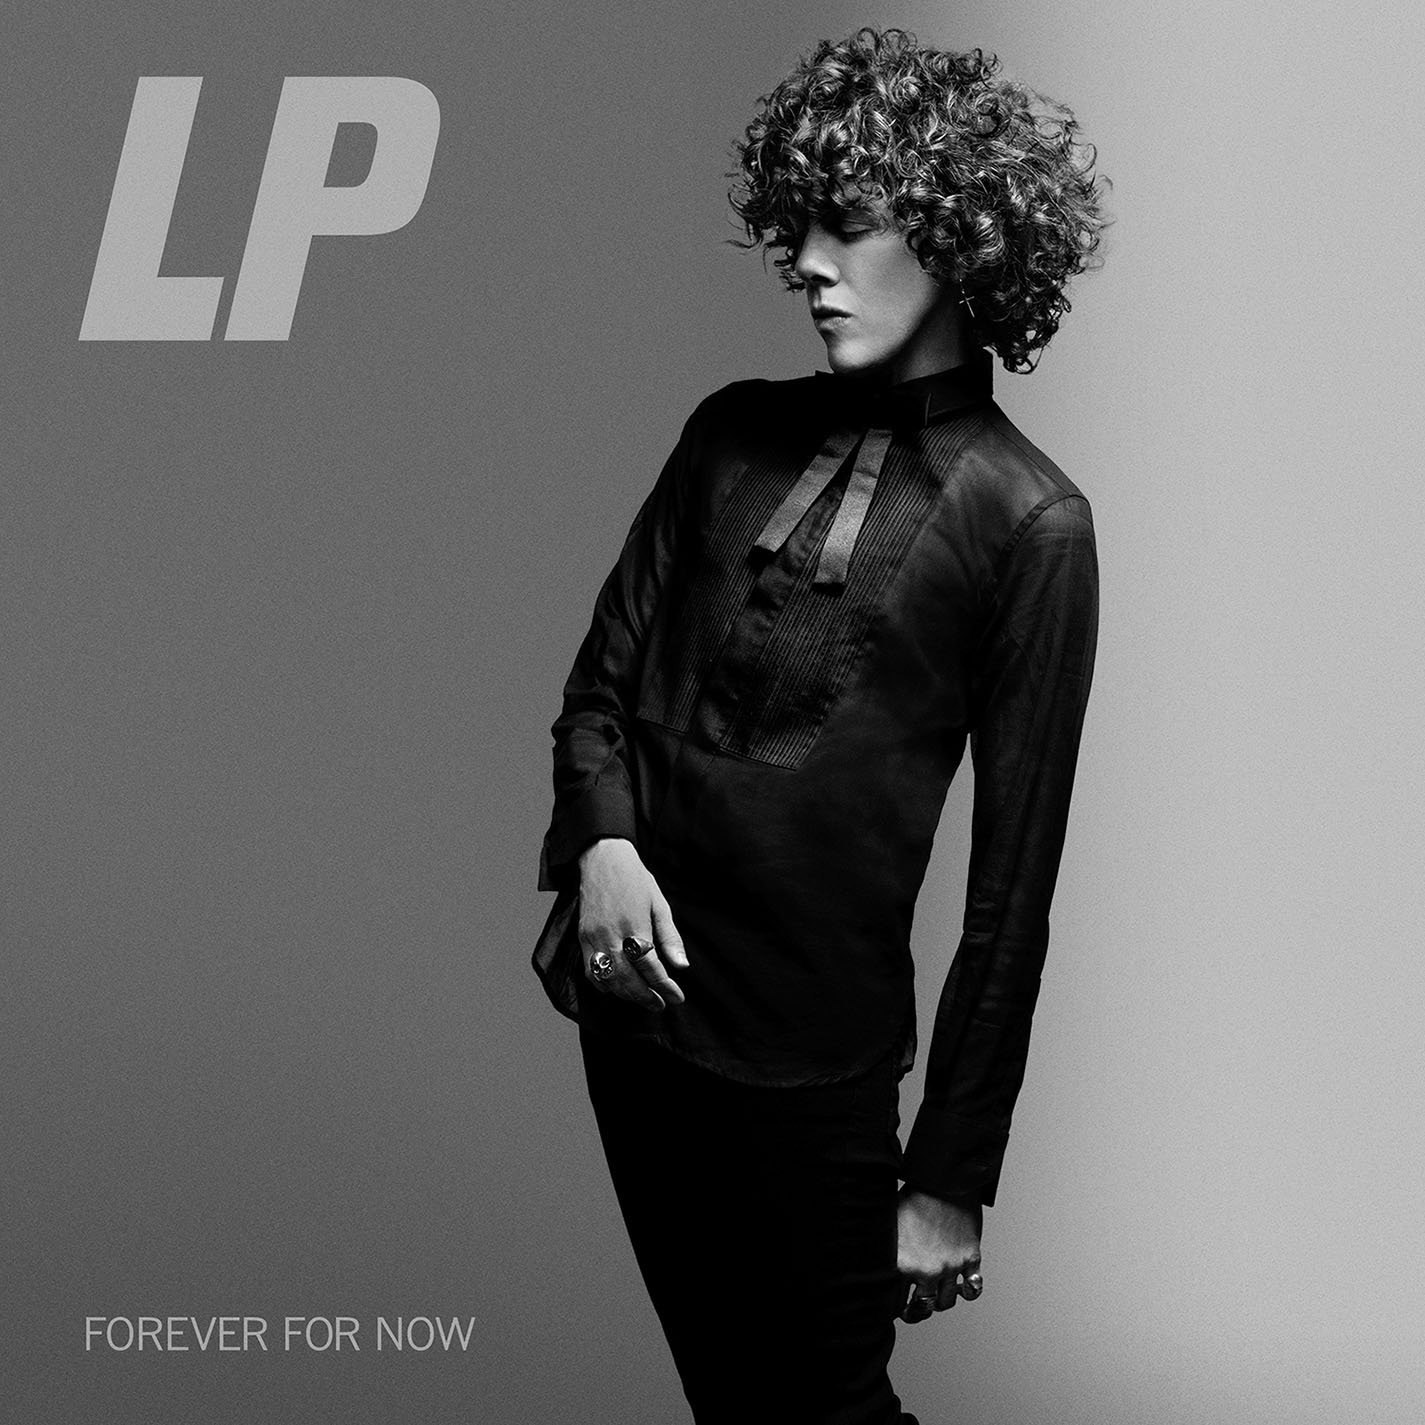 CD : LP - Forever for Now (CD)